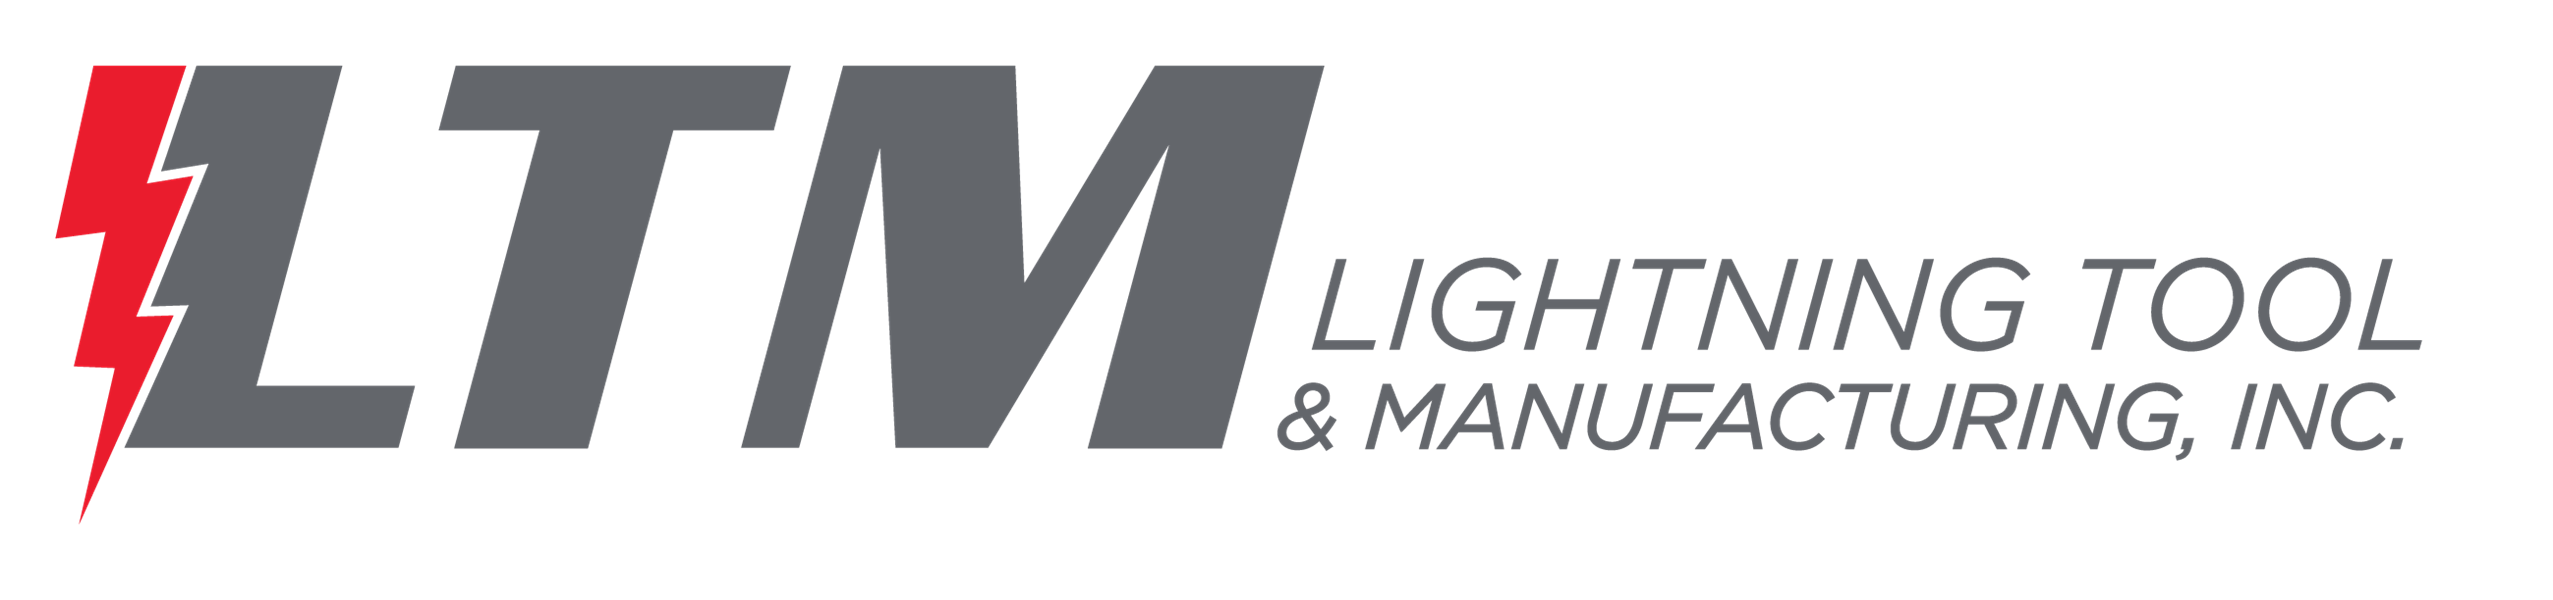 Lightning Tool & Manufacturing, Inc.